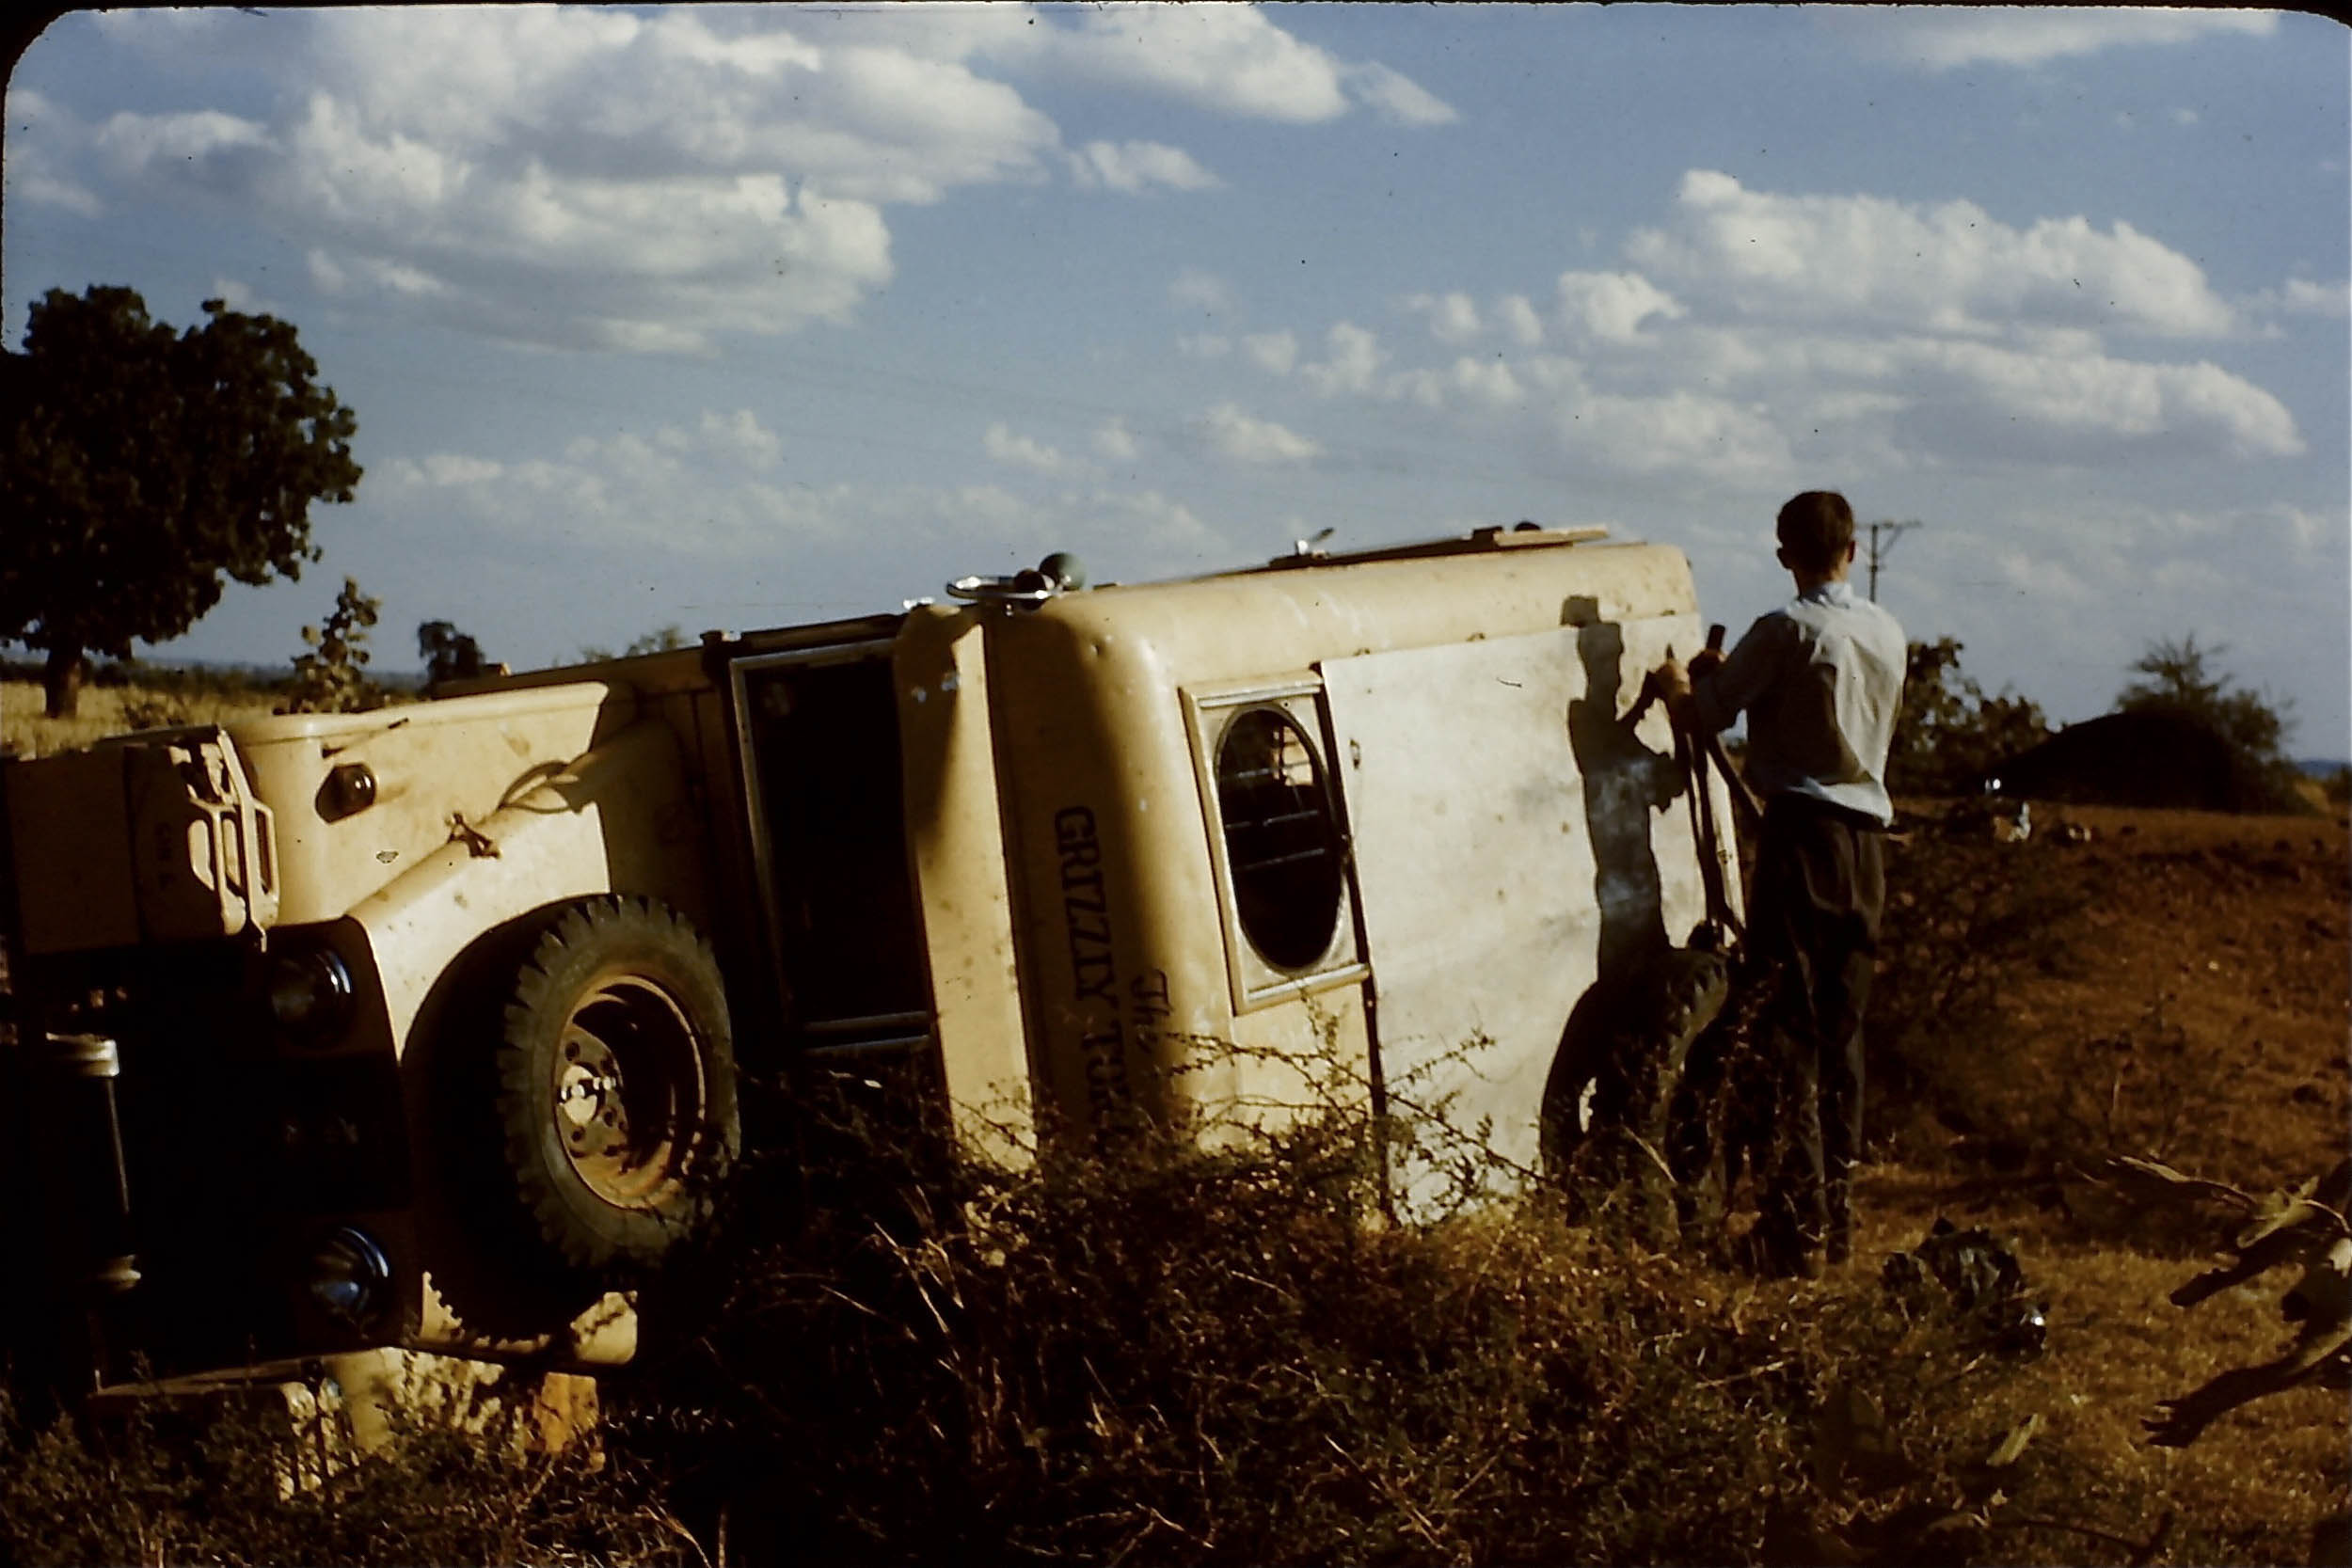 1957 Land Rover roll over accident